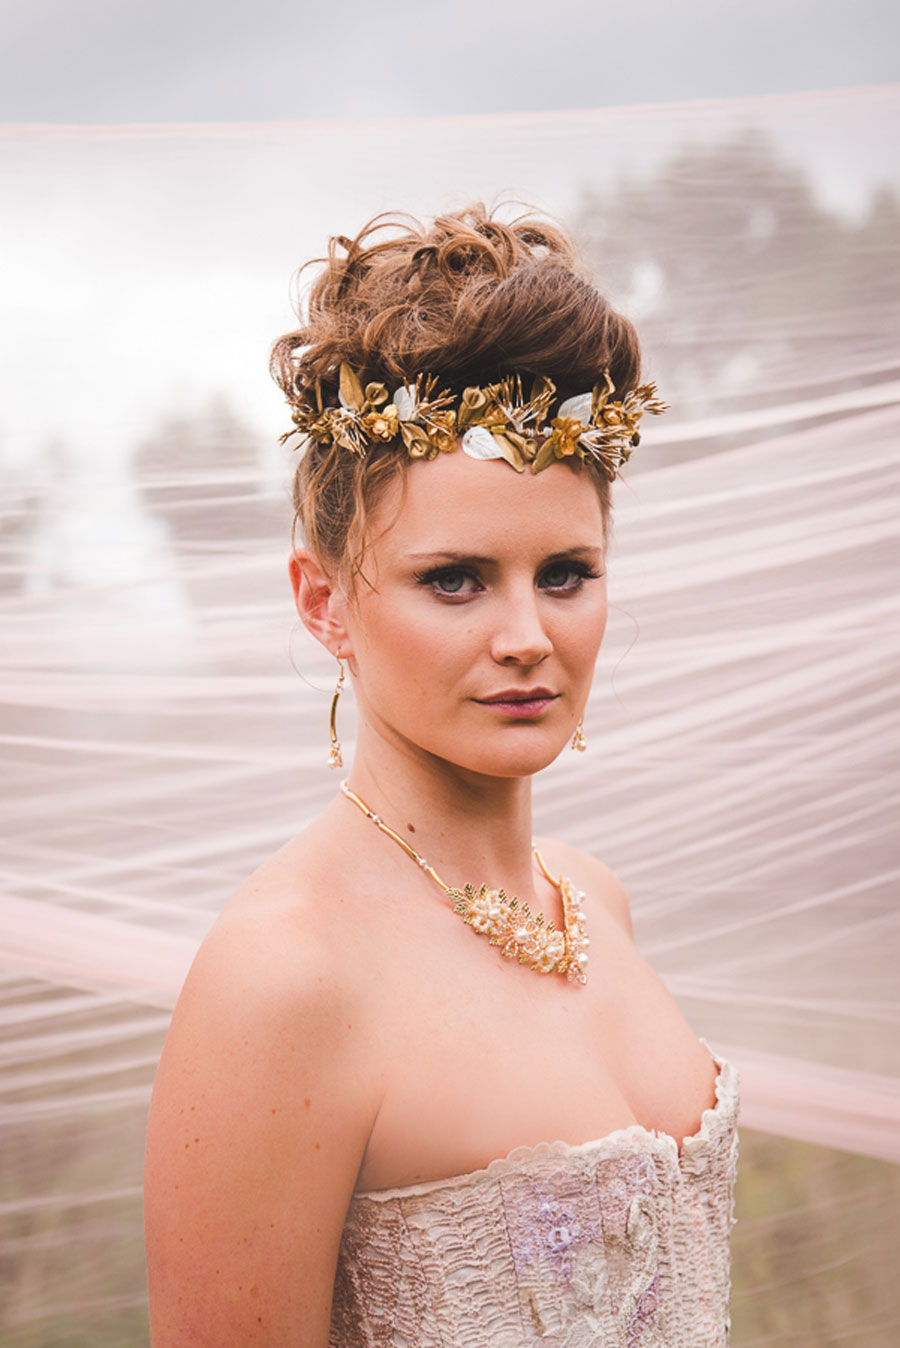 A Late Summer Renaissance-Meets-Fantasy Themed Bridal Shoot0030